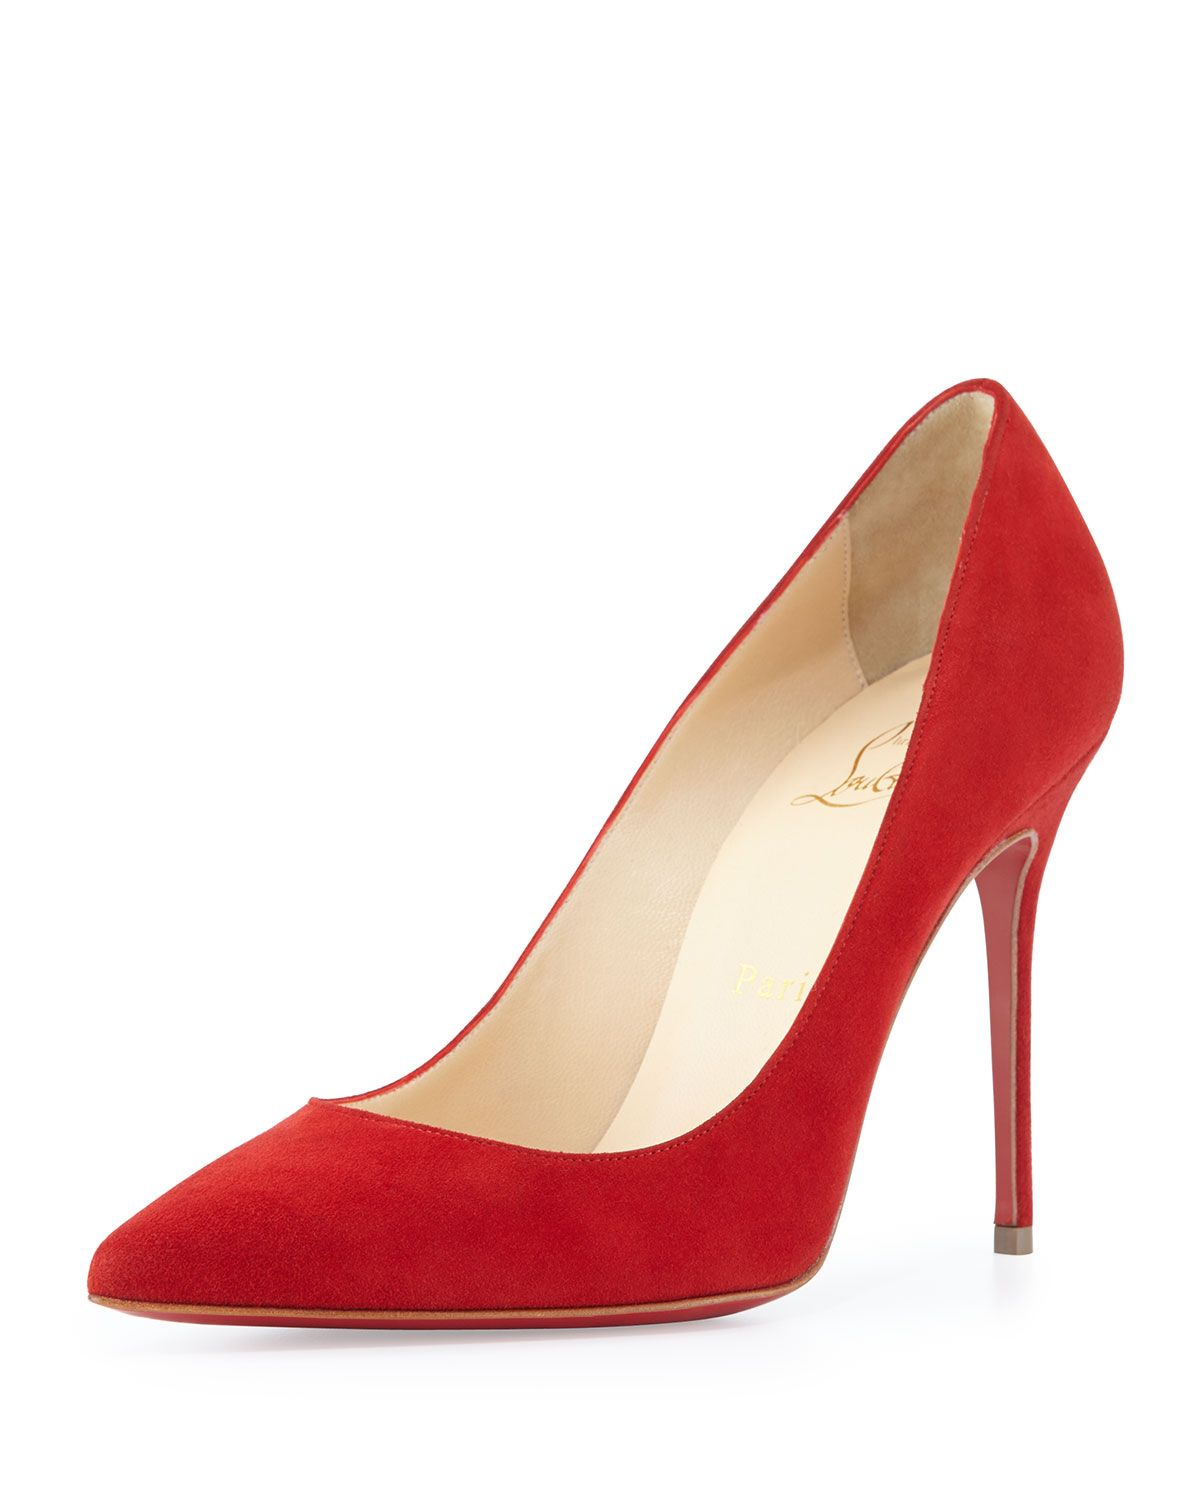 5b9eff92eadf Christian Louboutin 100MM Decollete 554 red suede